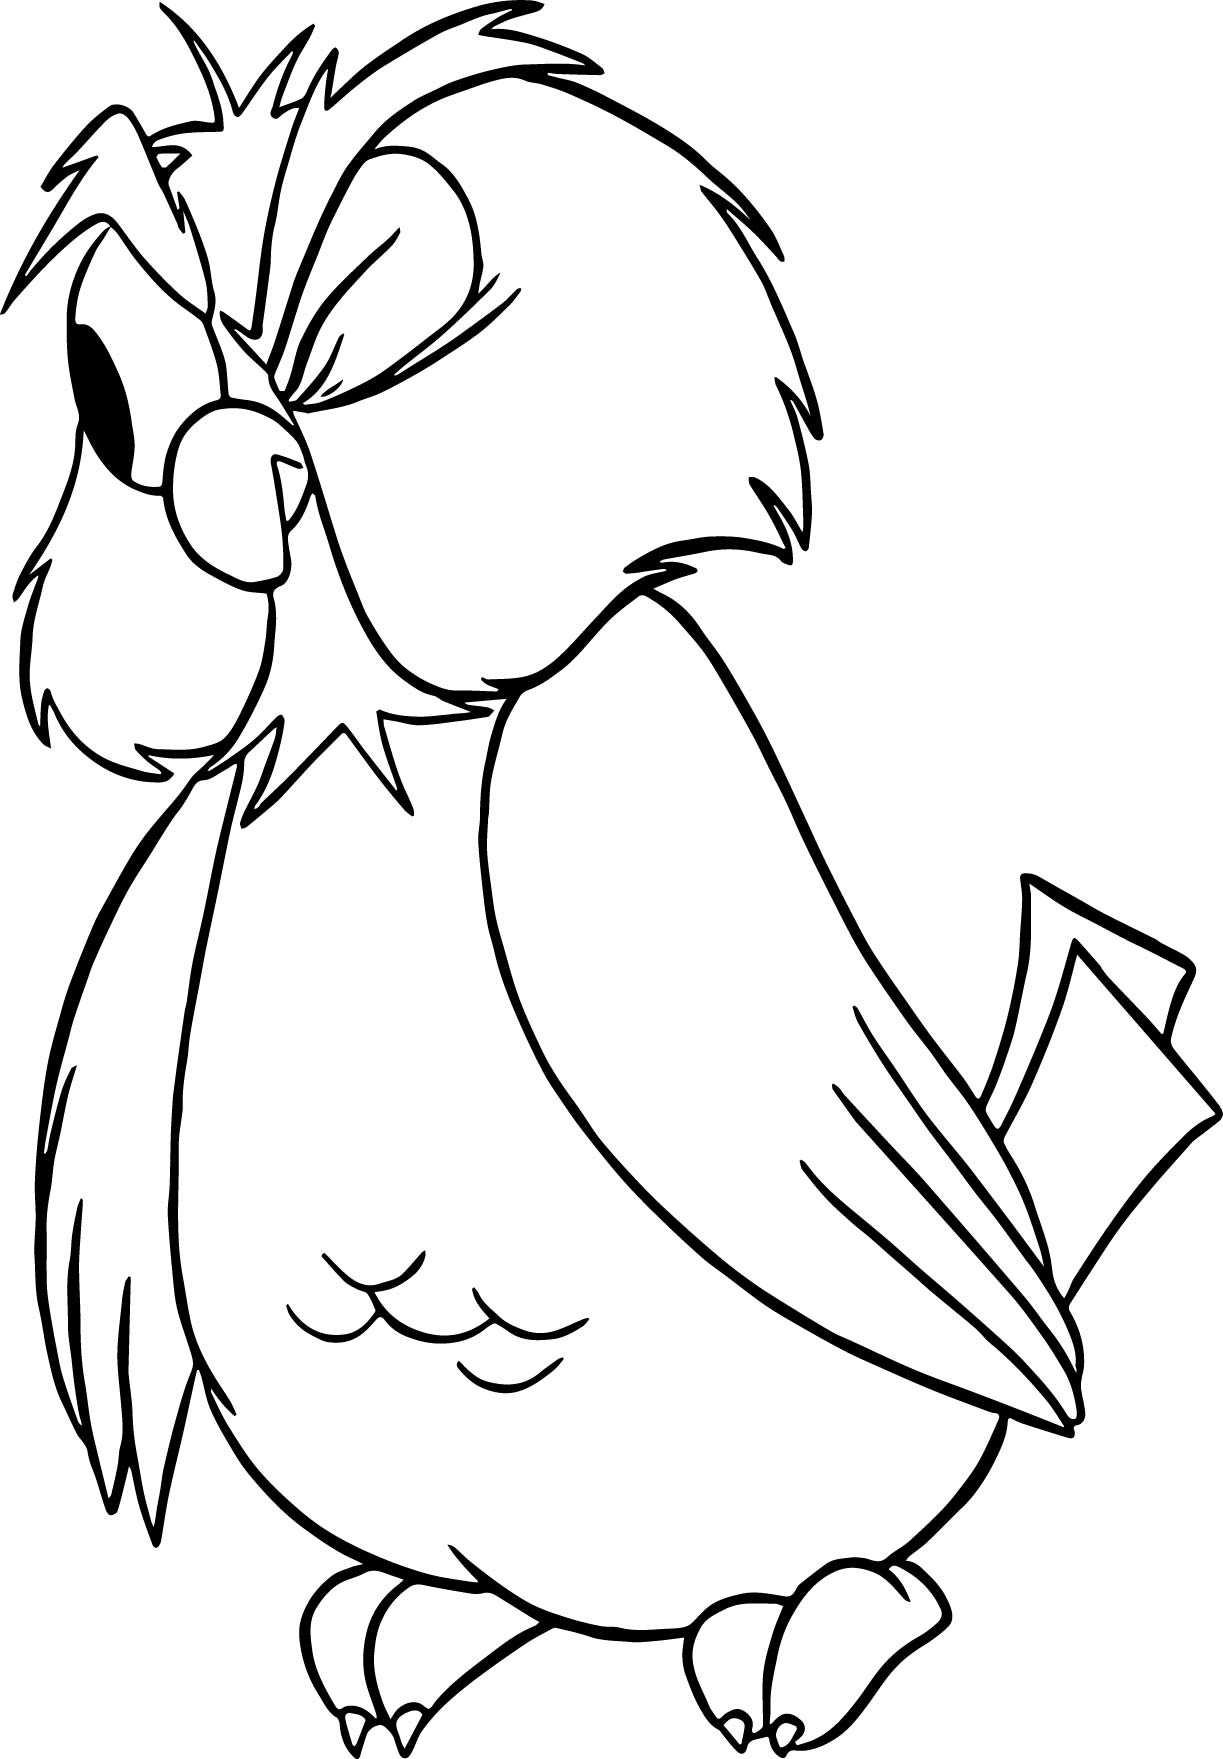 archimedes one eye owl coloring pages wecoloringpage